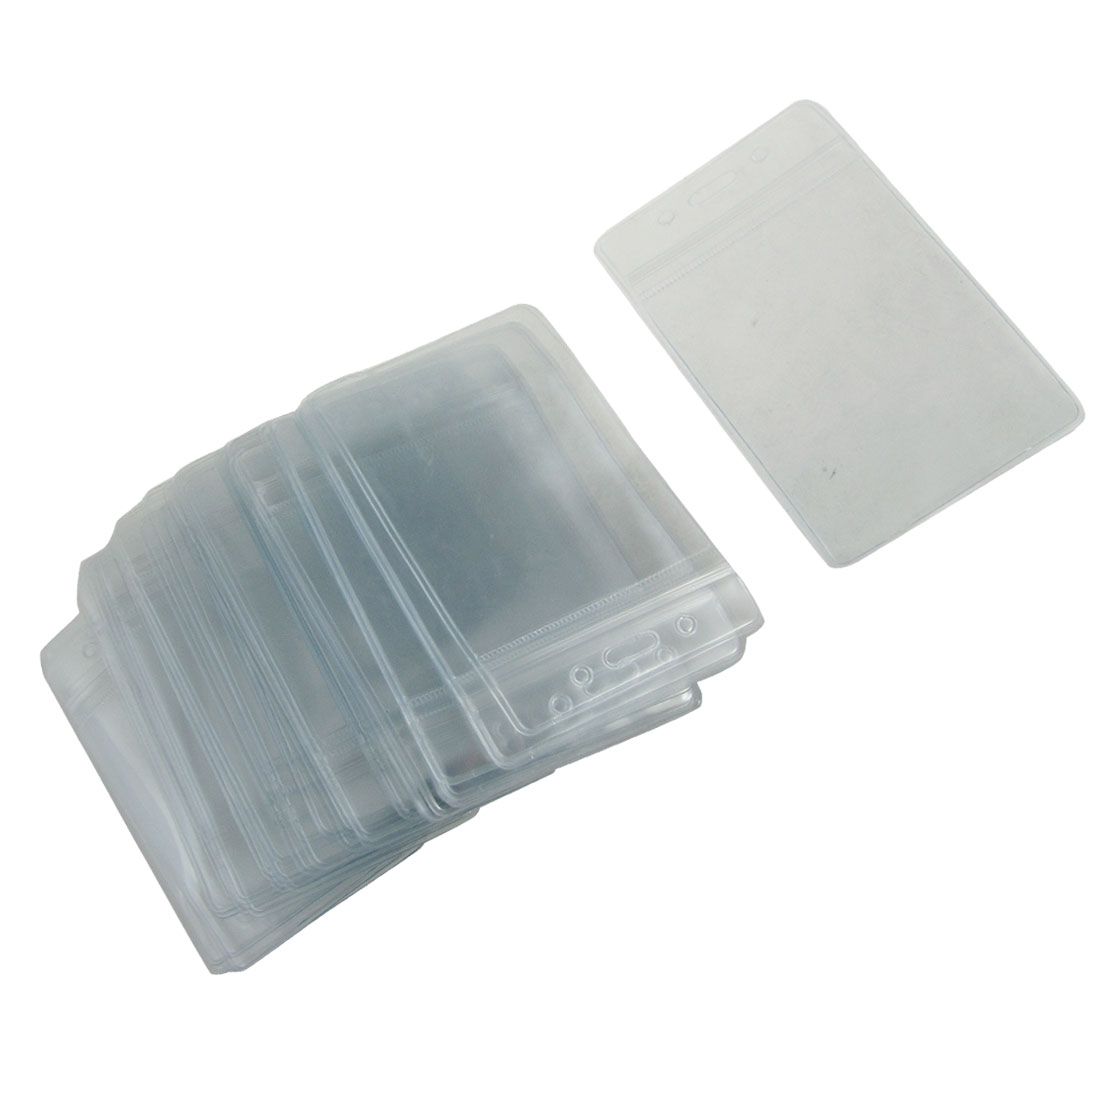 50 Pcs Transparent PVC Vertical ID Card Badge Holders